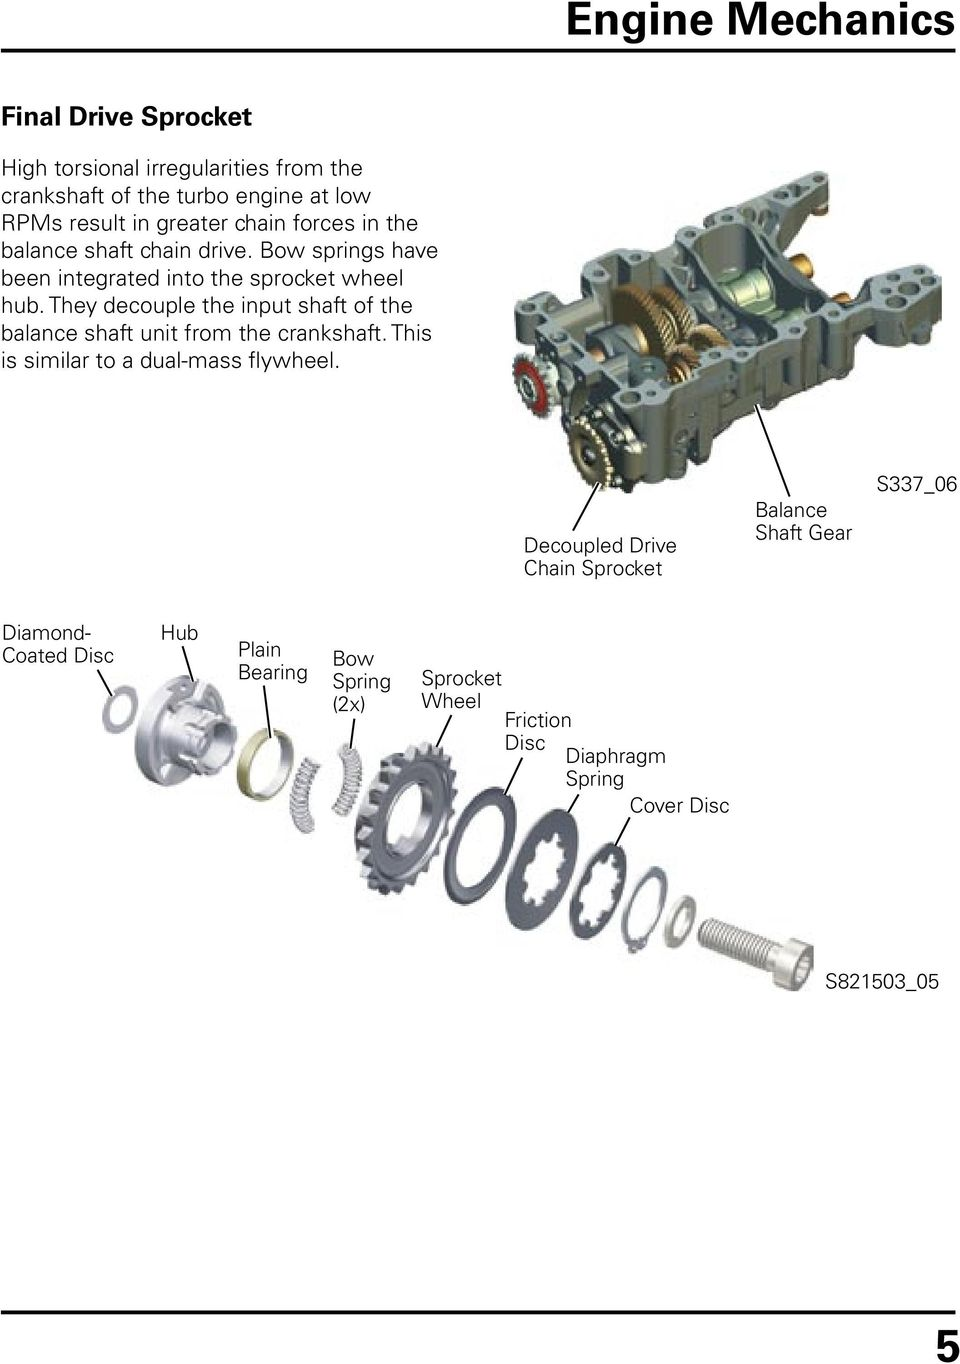 The 20l Fsi Turbocharged Engine Design And Function Pdf Steering Column Wiring Diagram Subaru Baja They Decouple Input Shaft Of Balance Unit From Crankshaft This Is